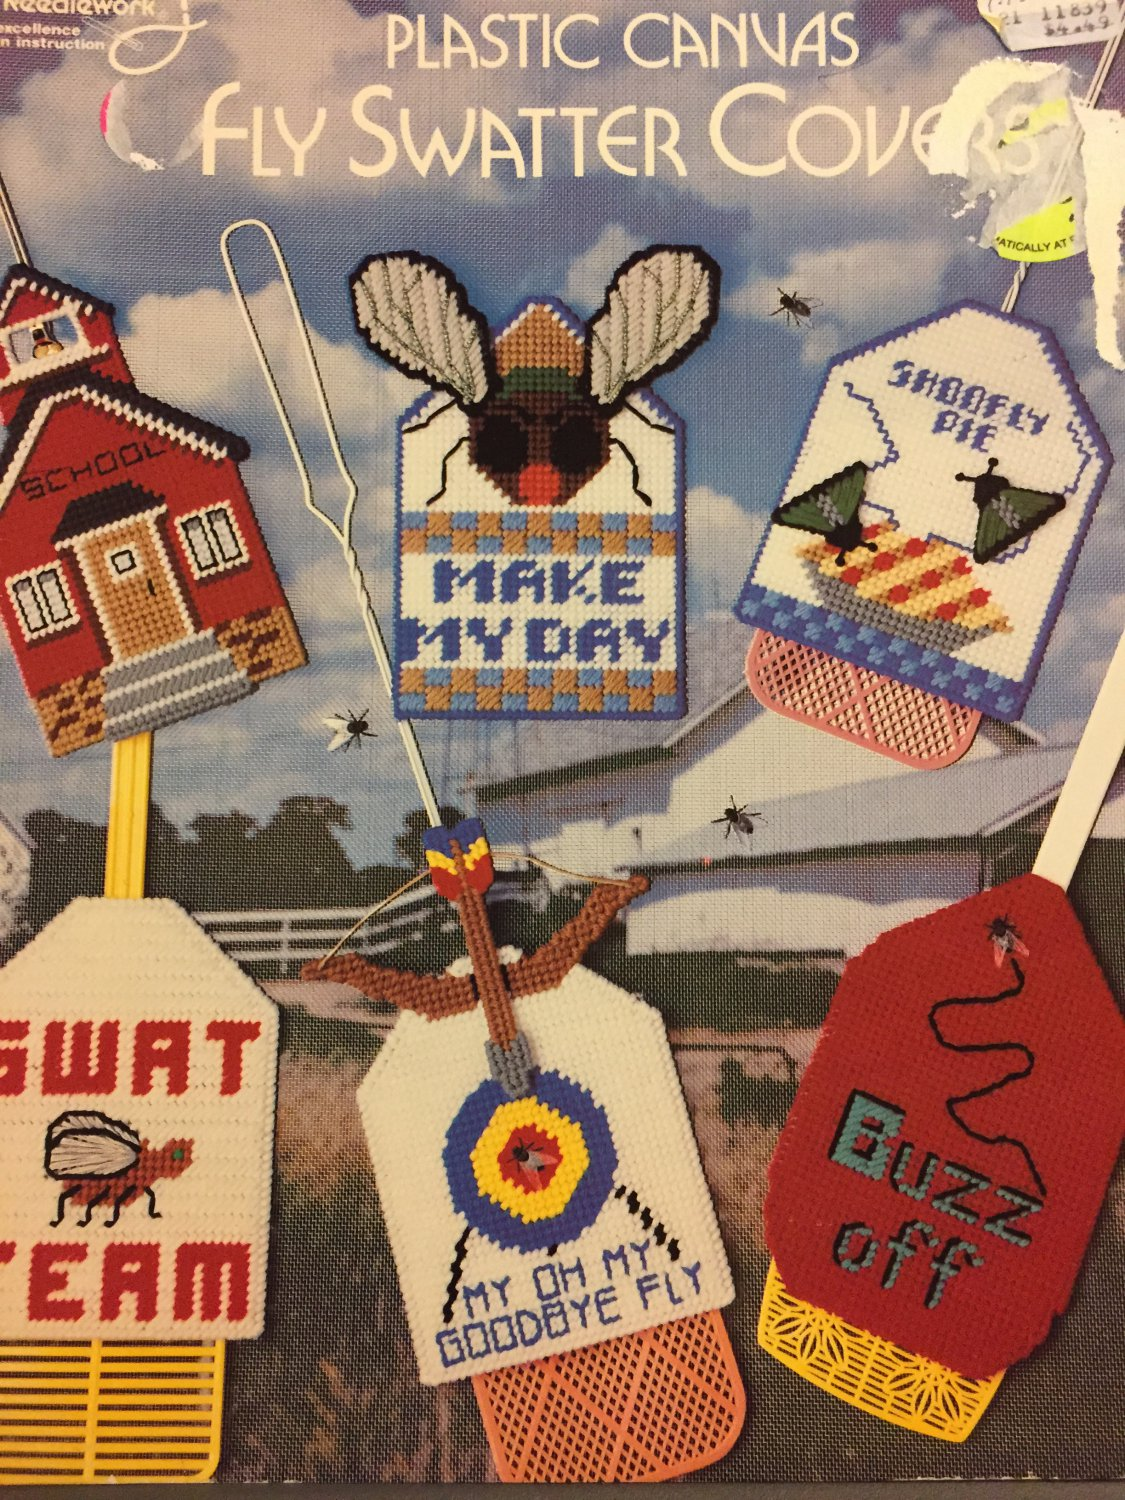 Plastic Canvas Fly Swatter Covers Pattern Booklet American School of Needlework 3074